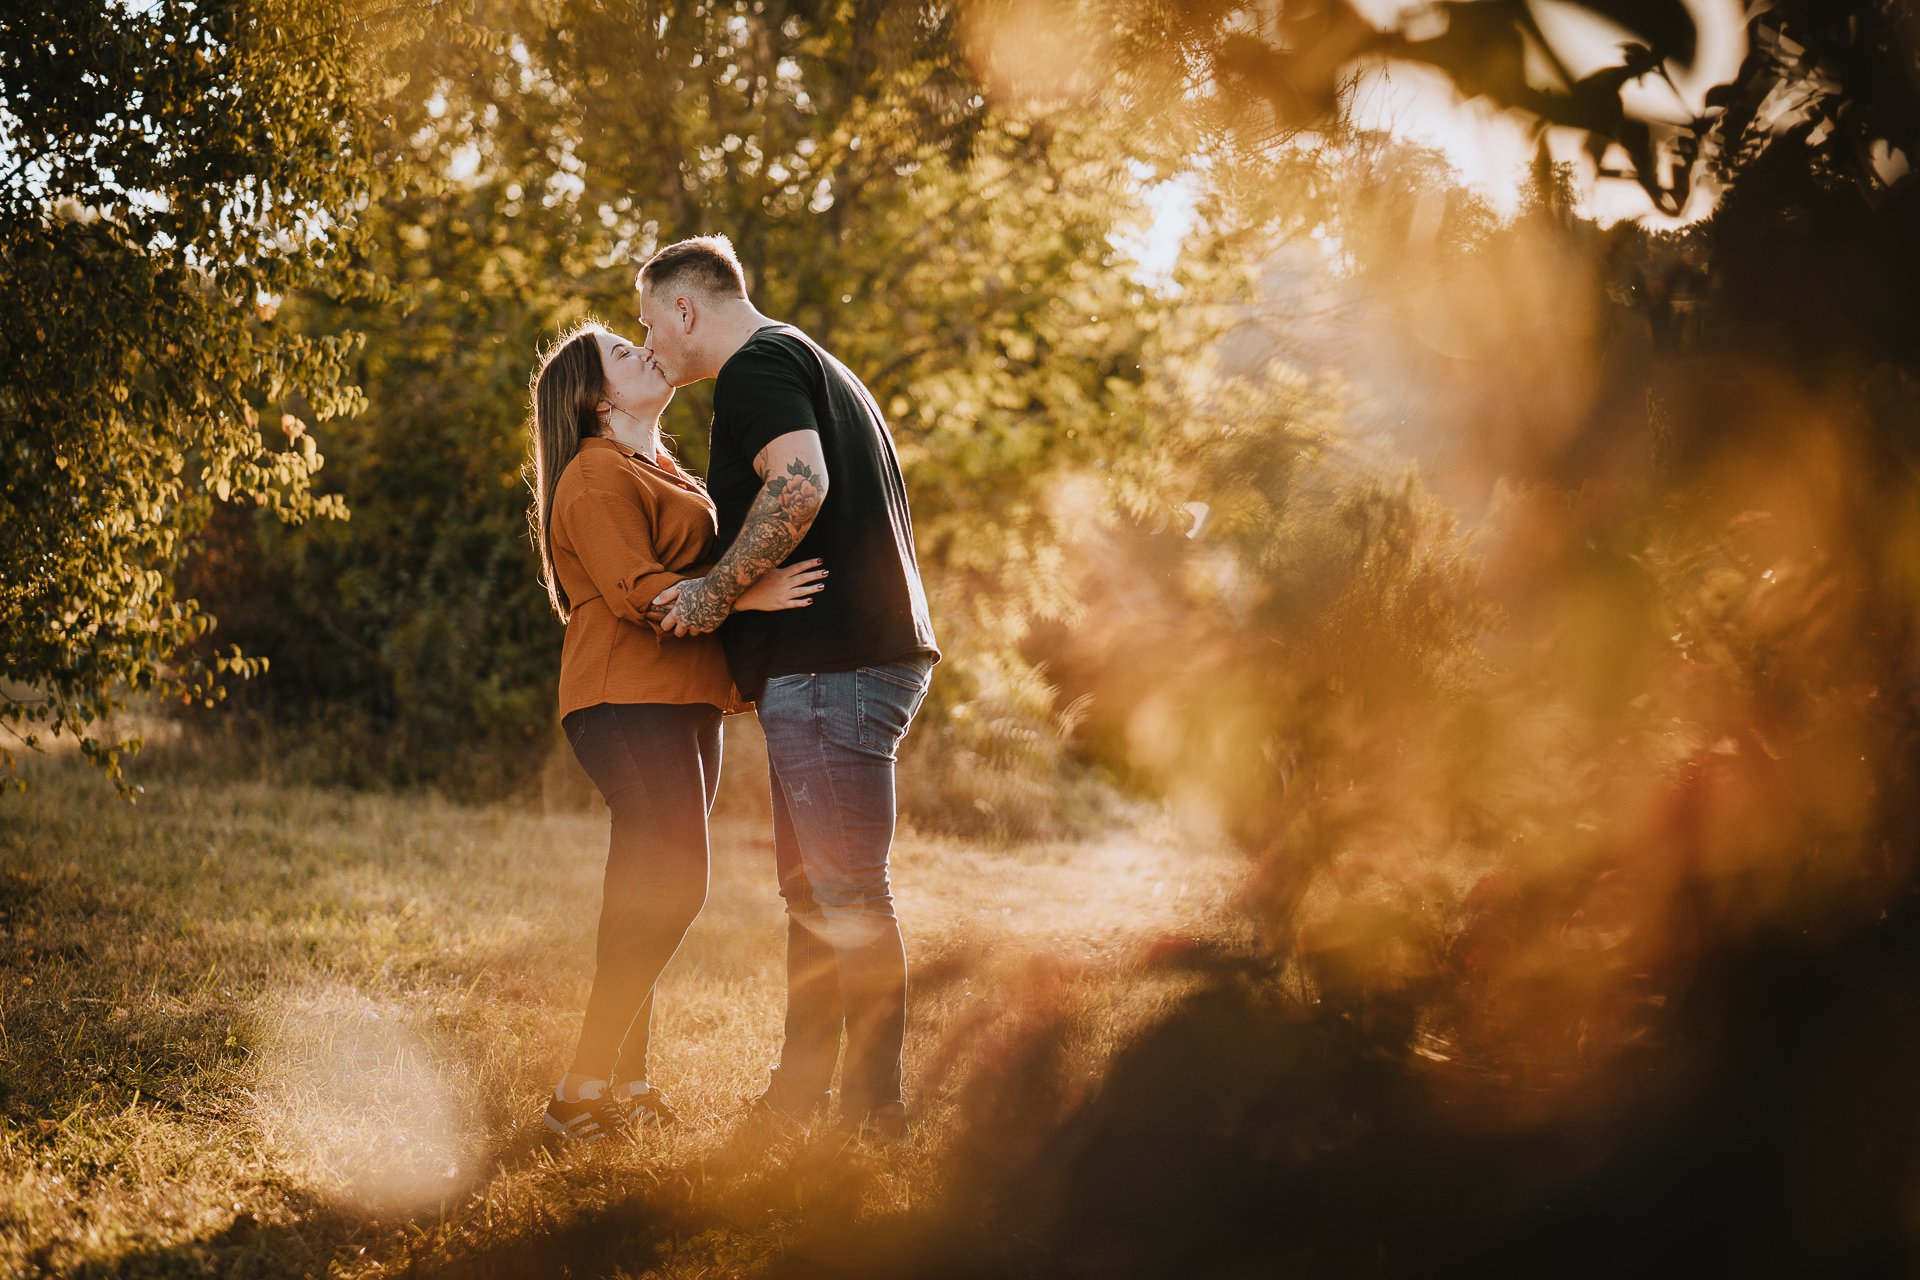 Engaged couple kissing during their autumnal sunset engagement shoot at Lullingstone Country Park, Kent